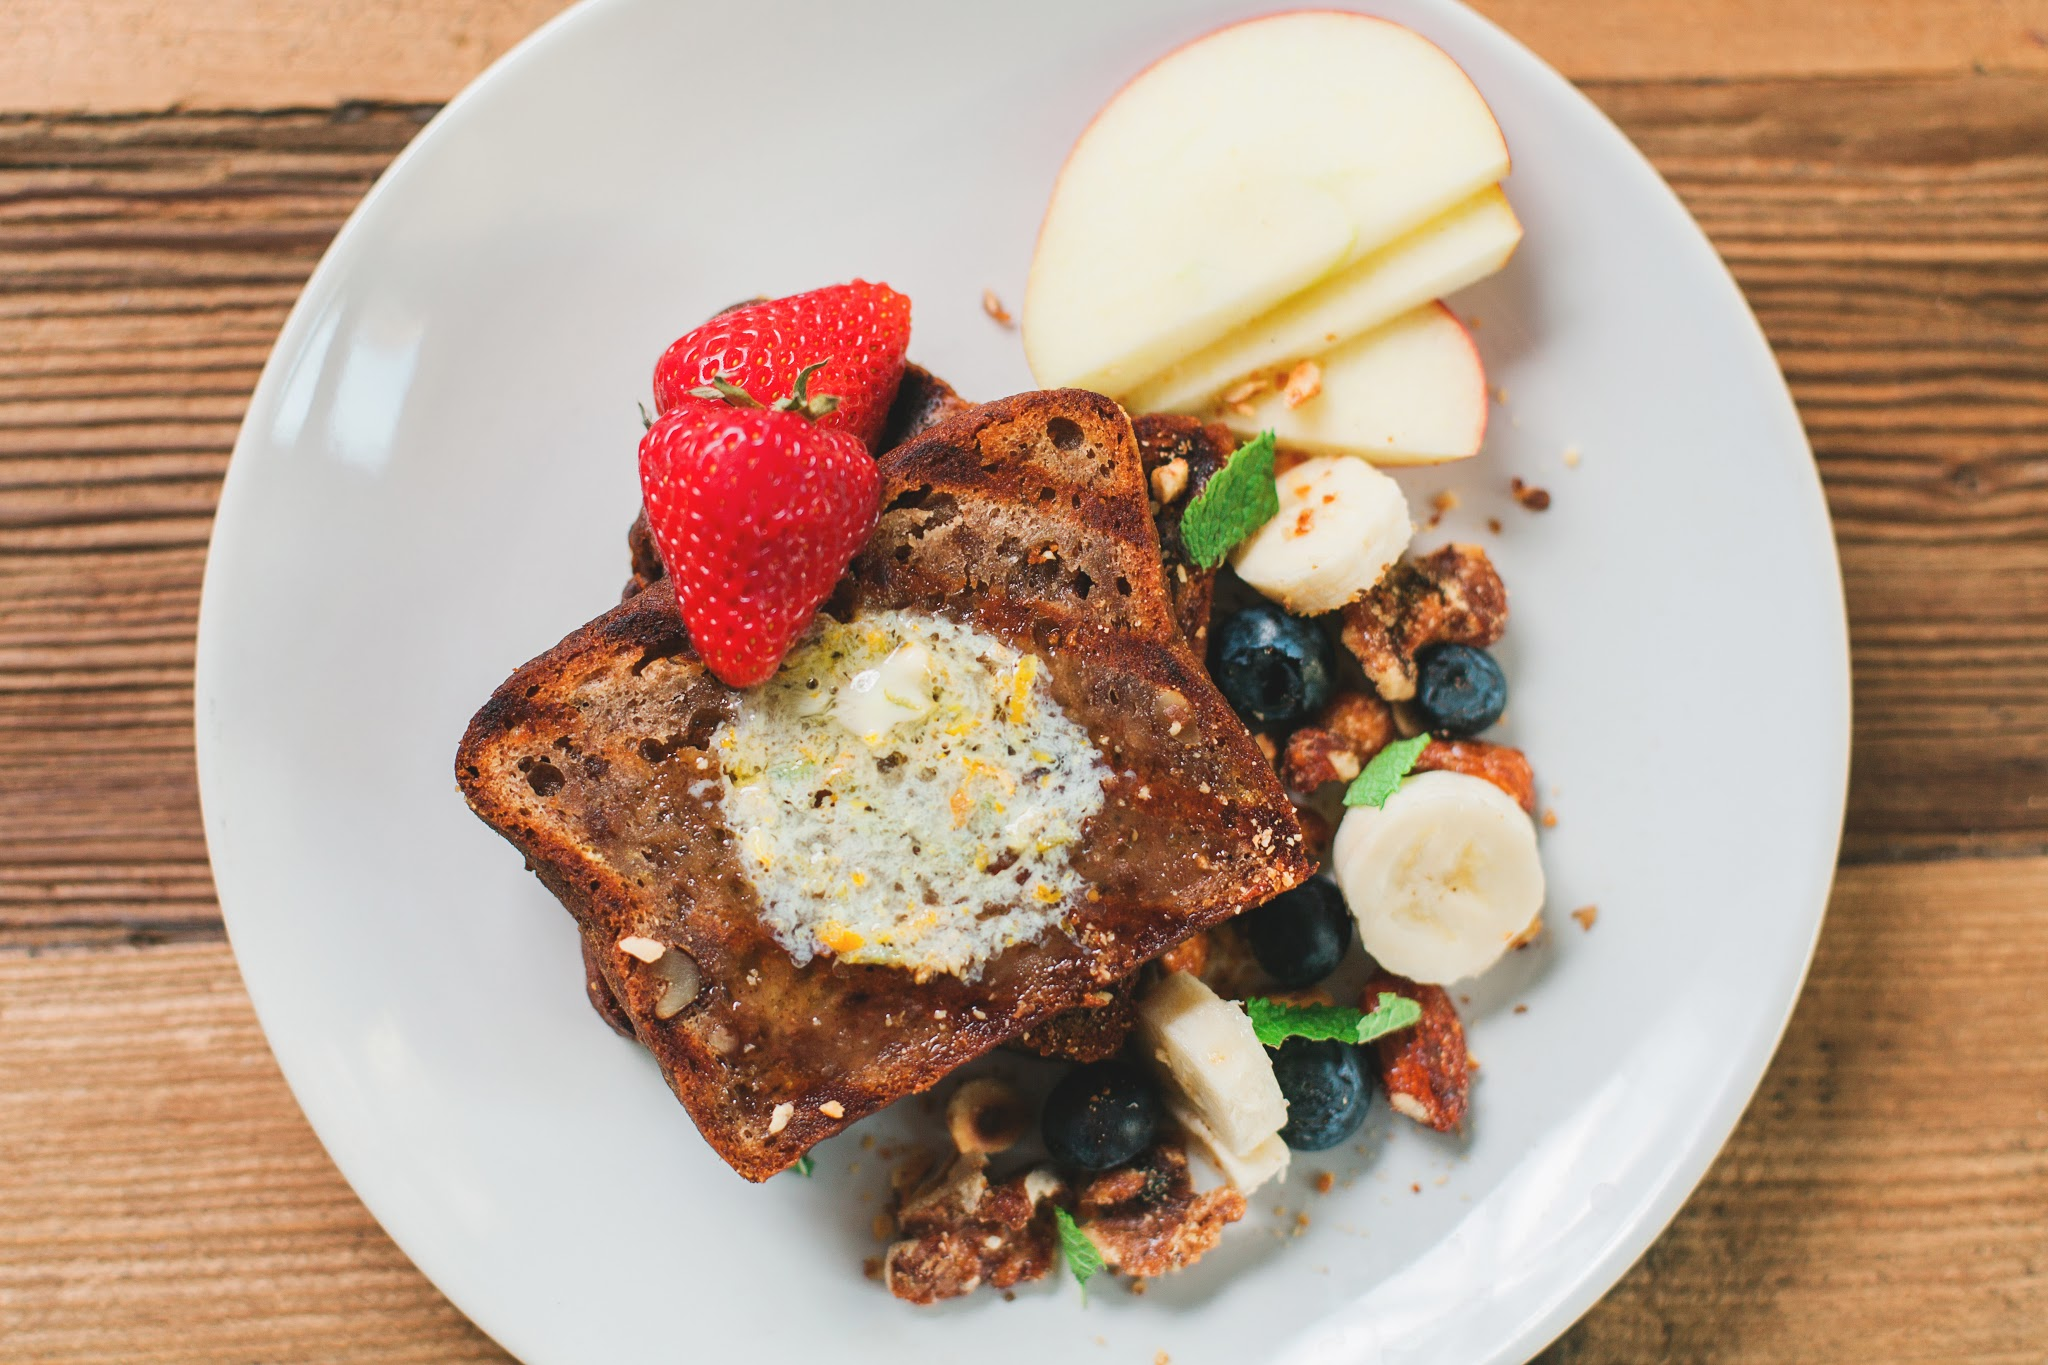 Banana bread, served with fruit, granola and citrus butter....delicious!